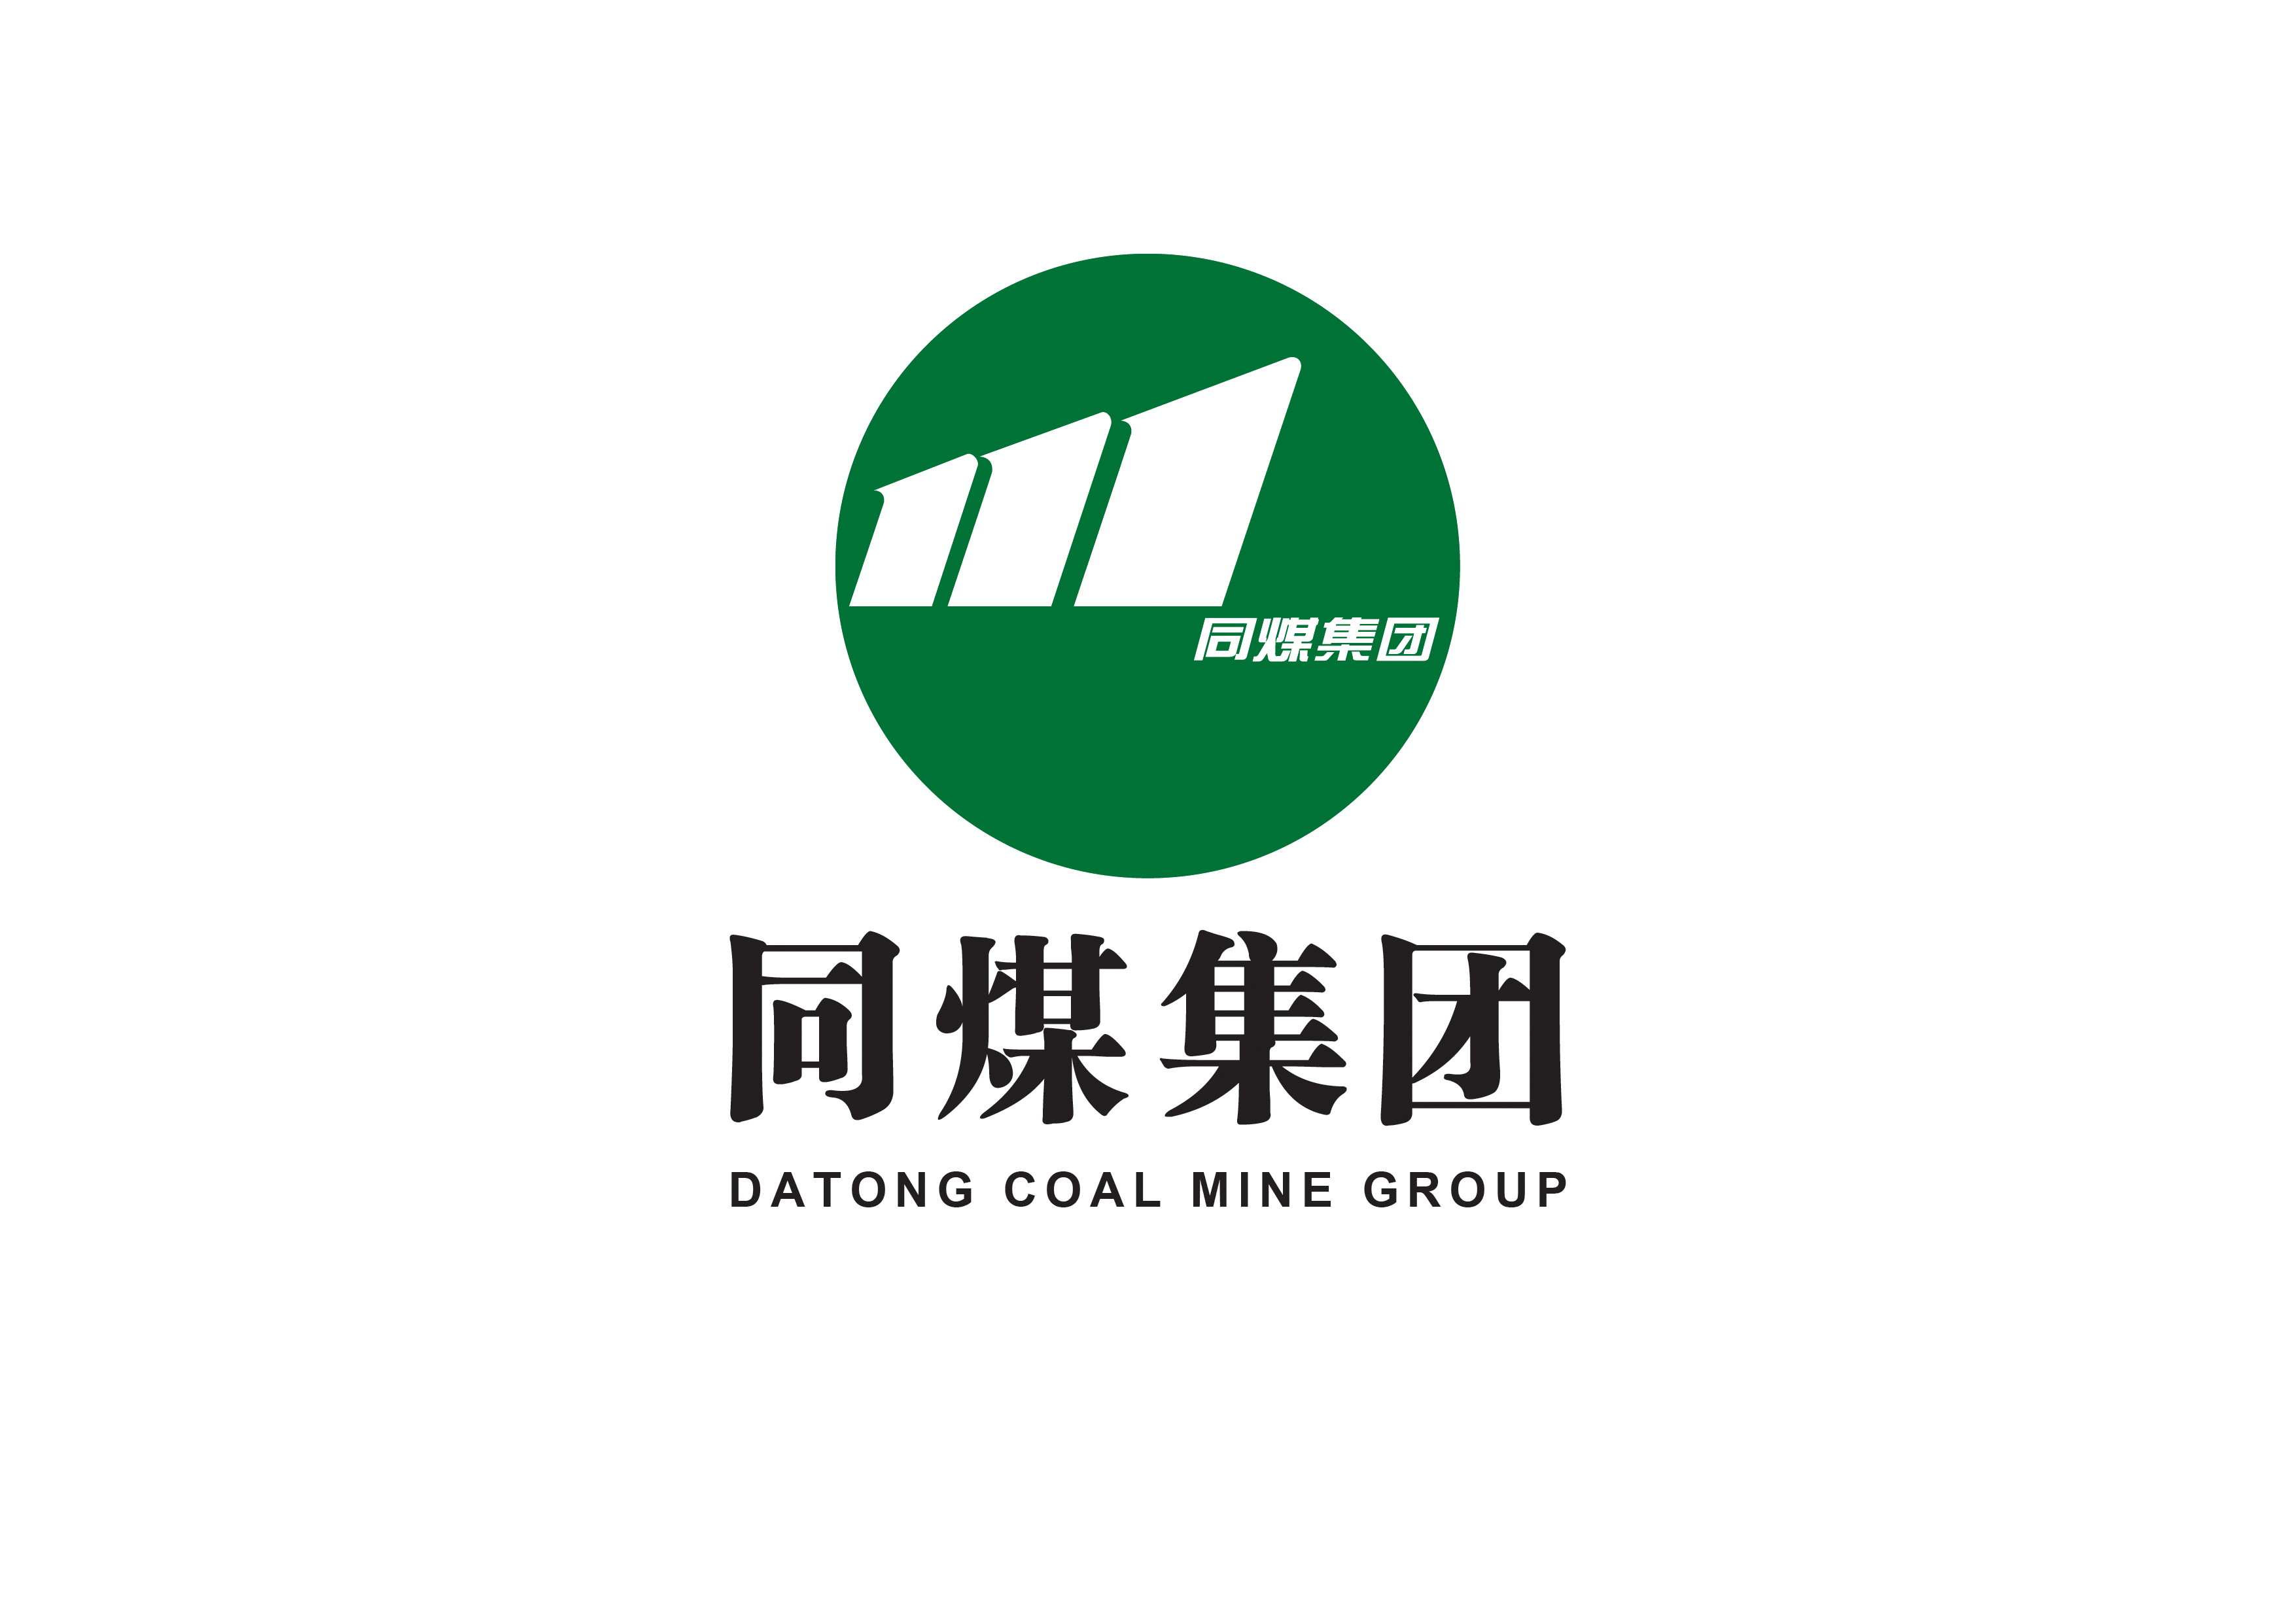 Datong Coal Mine Group